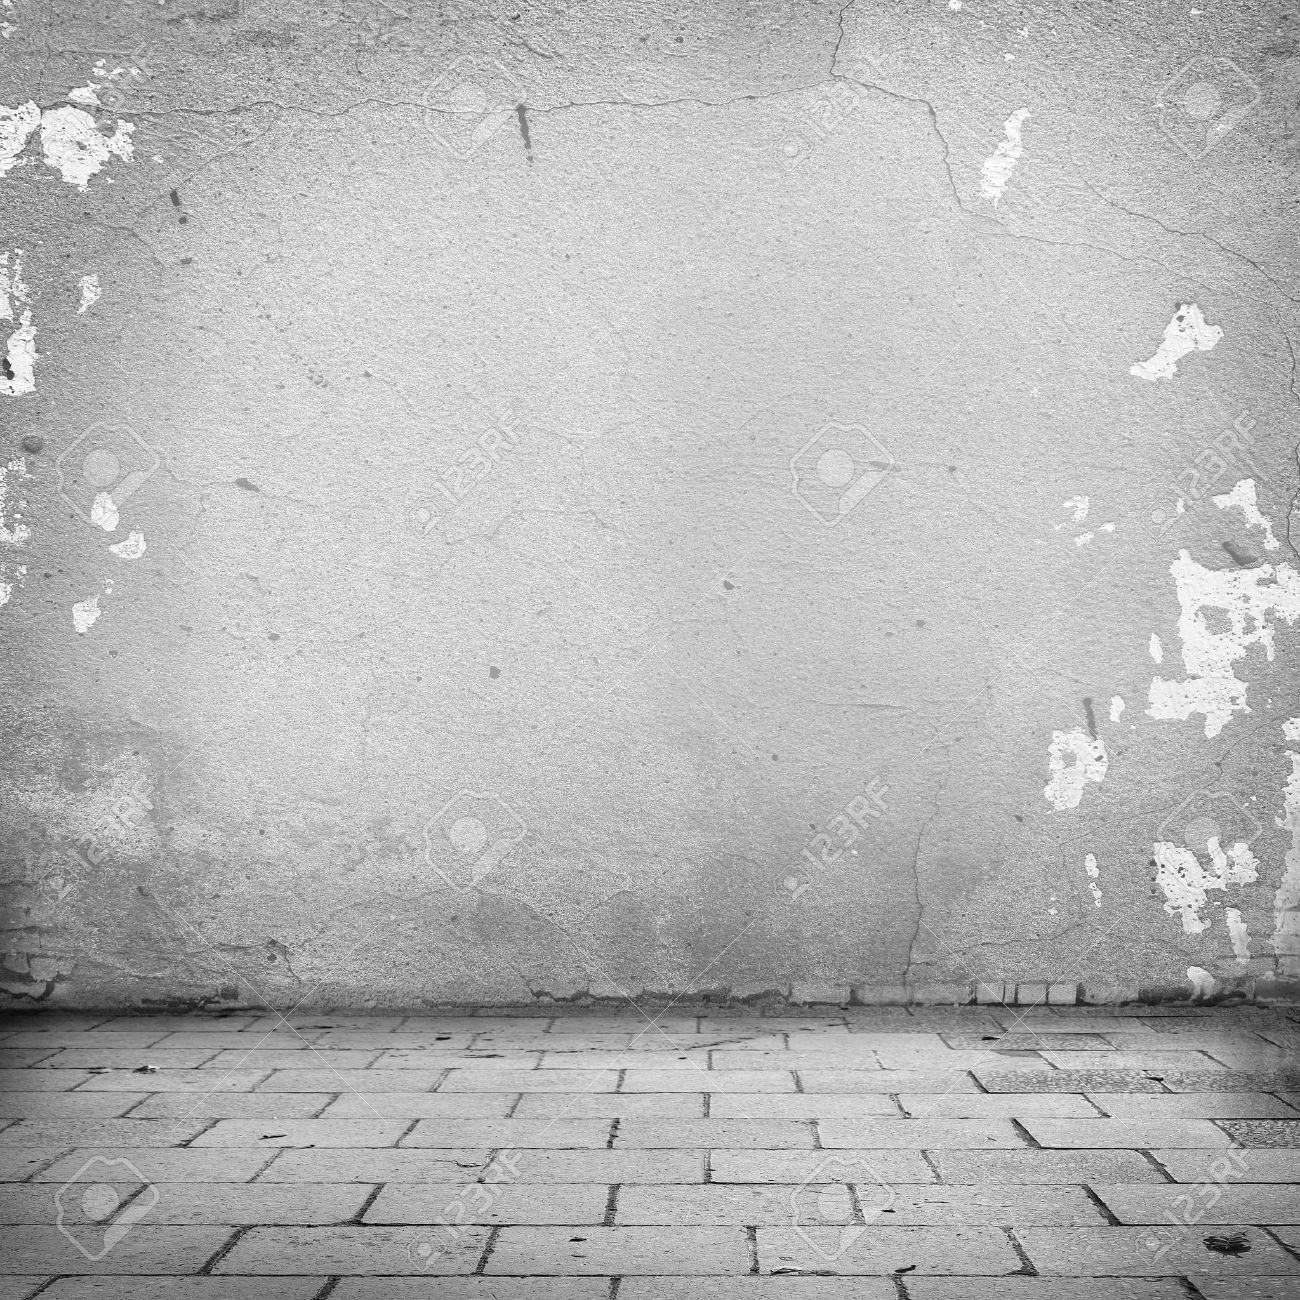 Grunge background white wall texture and blocks road sidewalk abandoned exterior urban background for your